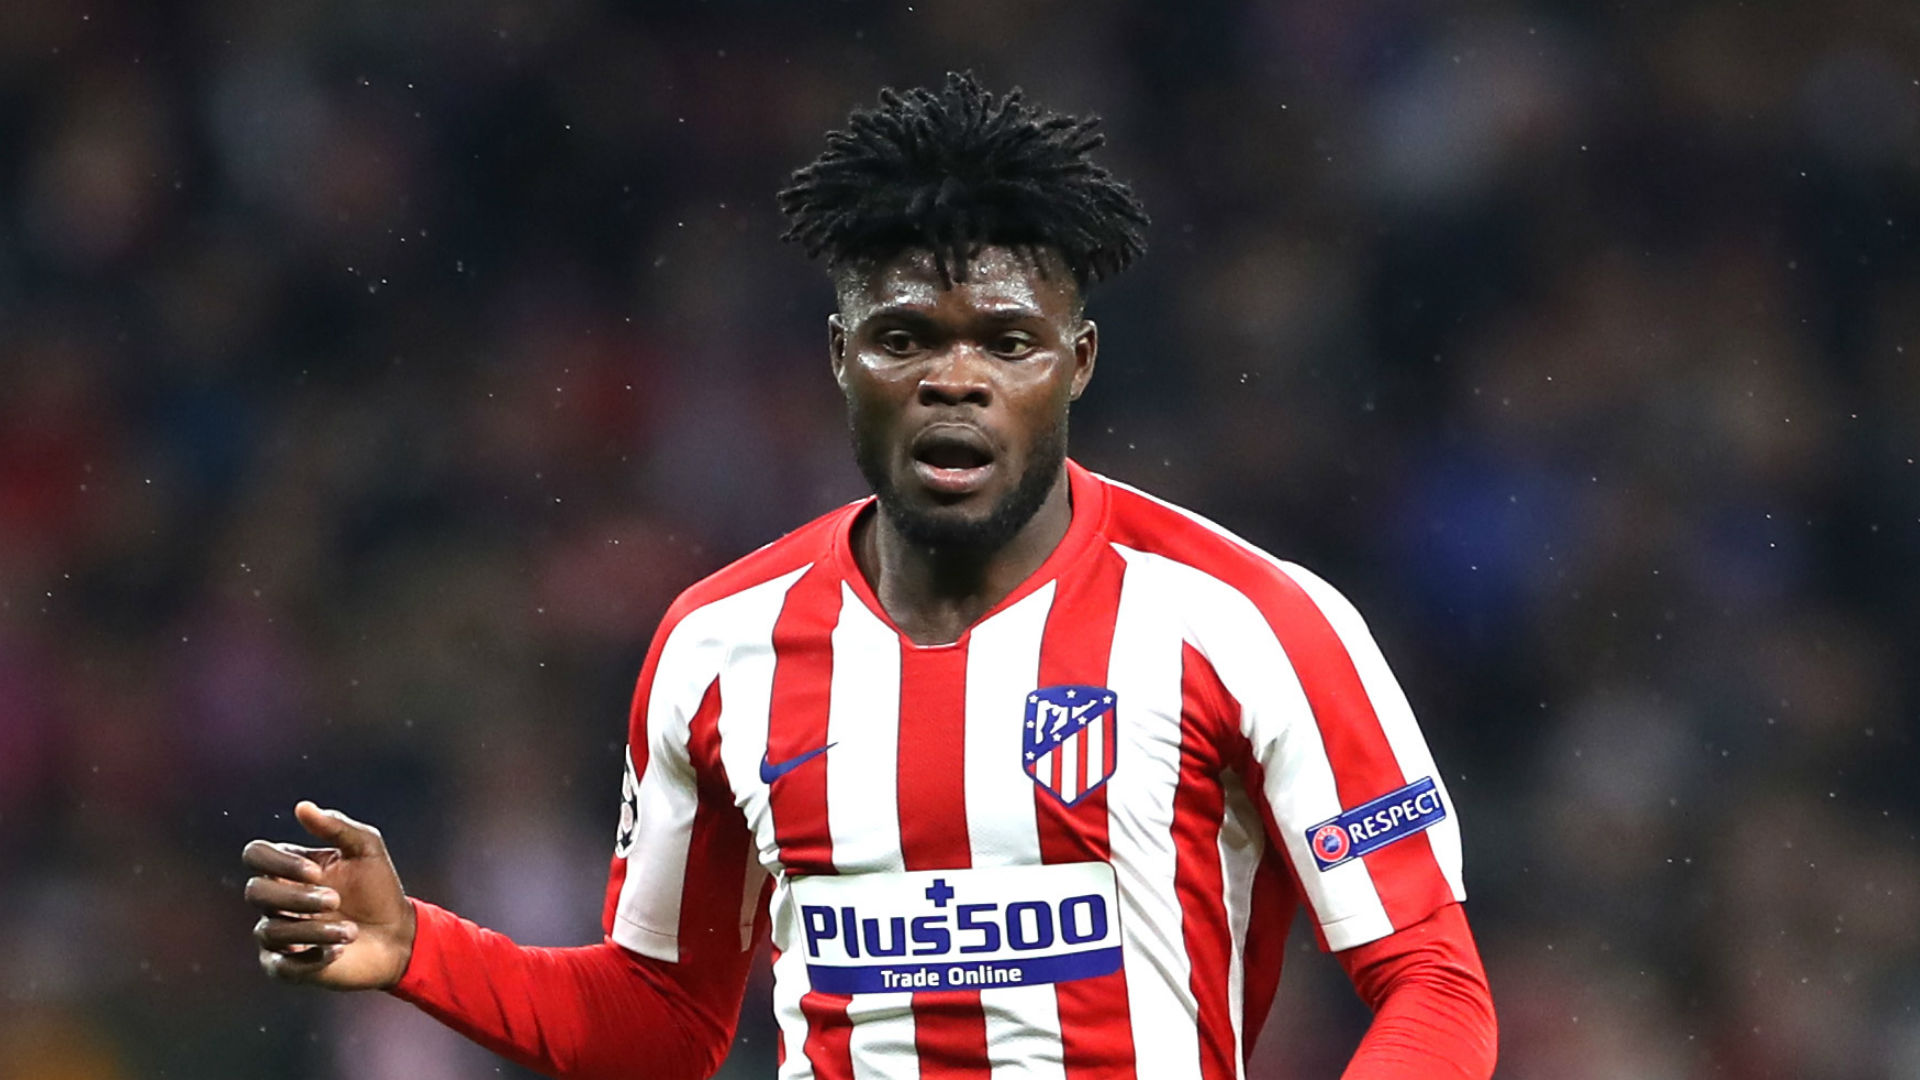 FEATURE: Five things you might not know about Thomas Partey